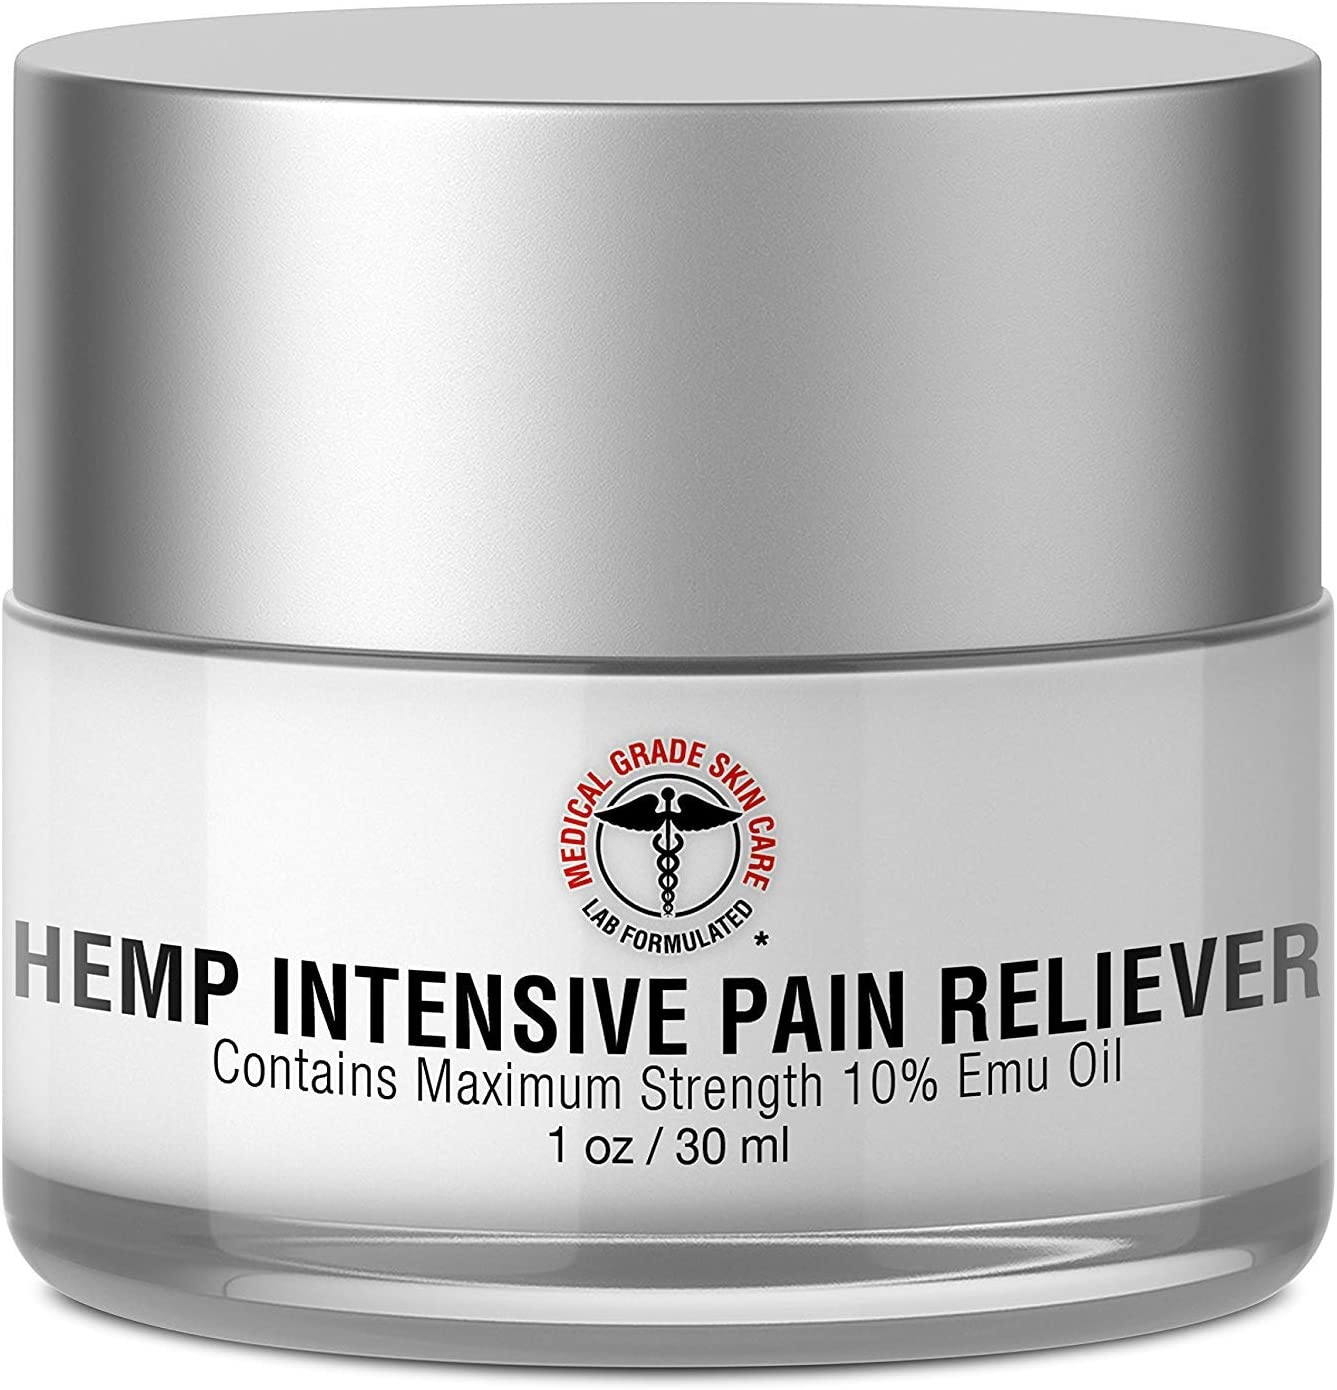 Hemp Cream for Pain Relief - SkinPro Medical Grade Skin Care - Contains Maximum Strength 10% Emu Oil for Potent, Fast-Acting Results